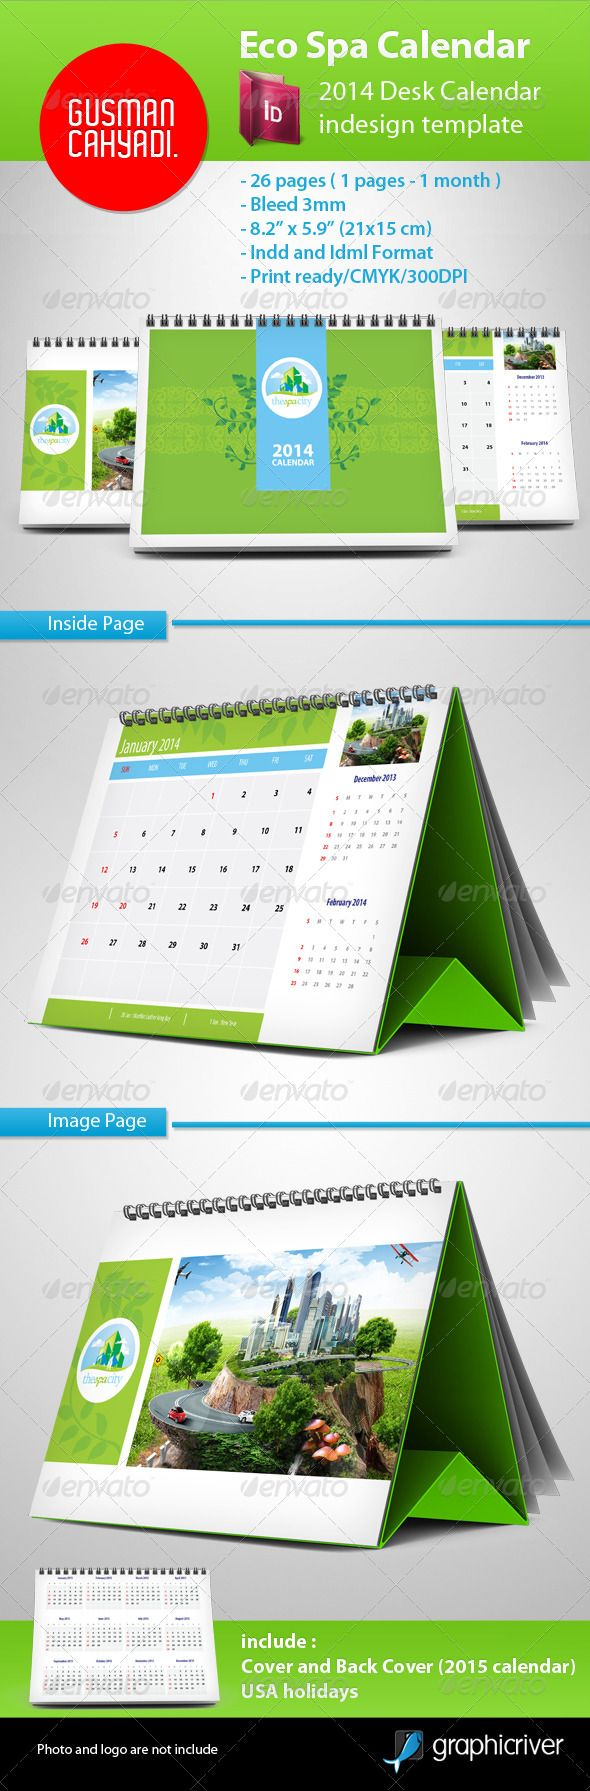 Business Calendar Design : Best images about corporate calendar design on pinterest